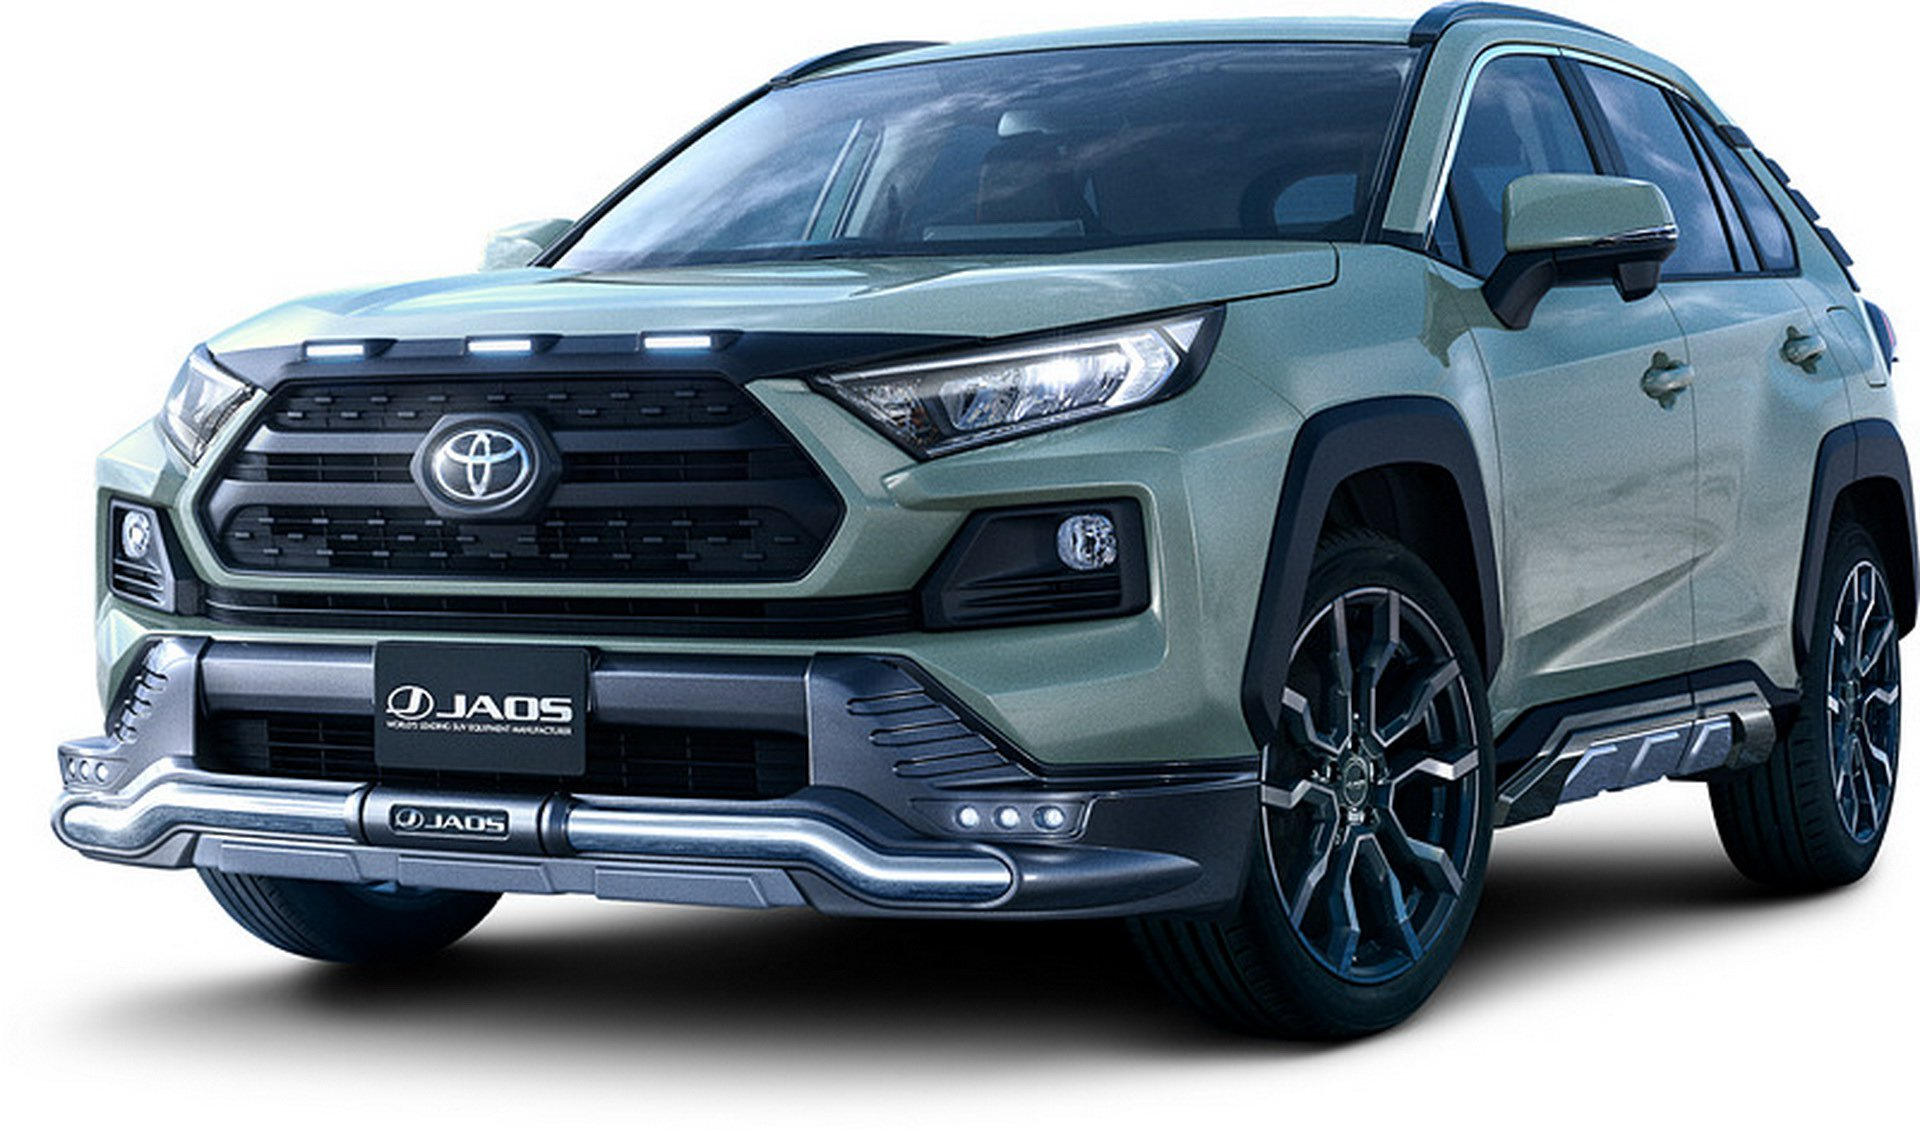 2019 Toyota Rav4 Now Available With Trd Modellista Accessories In Japan Autoevolution